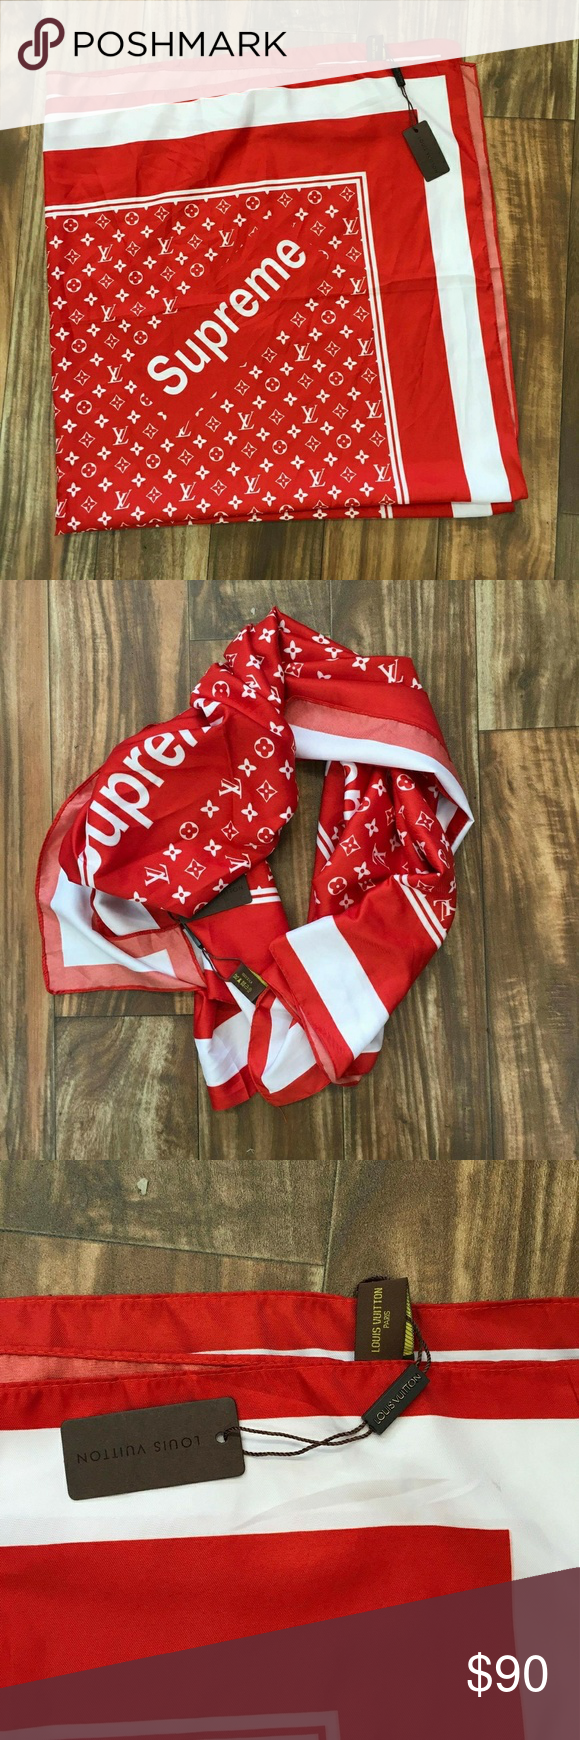 Supreme X Louis Vuitton Bandana New Fast2 3 Days Shipping Accessories Scarves Wraps